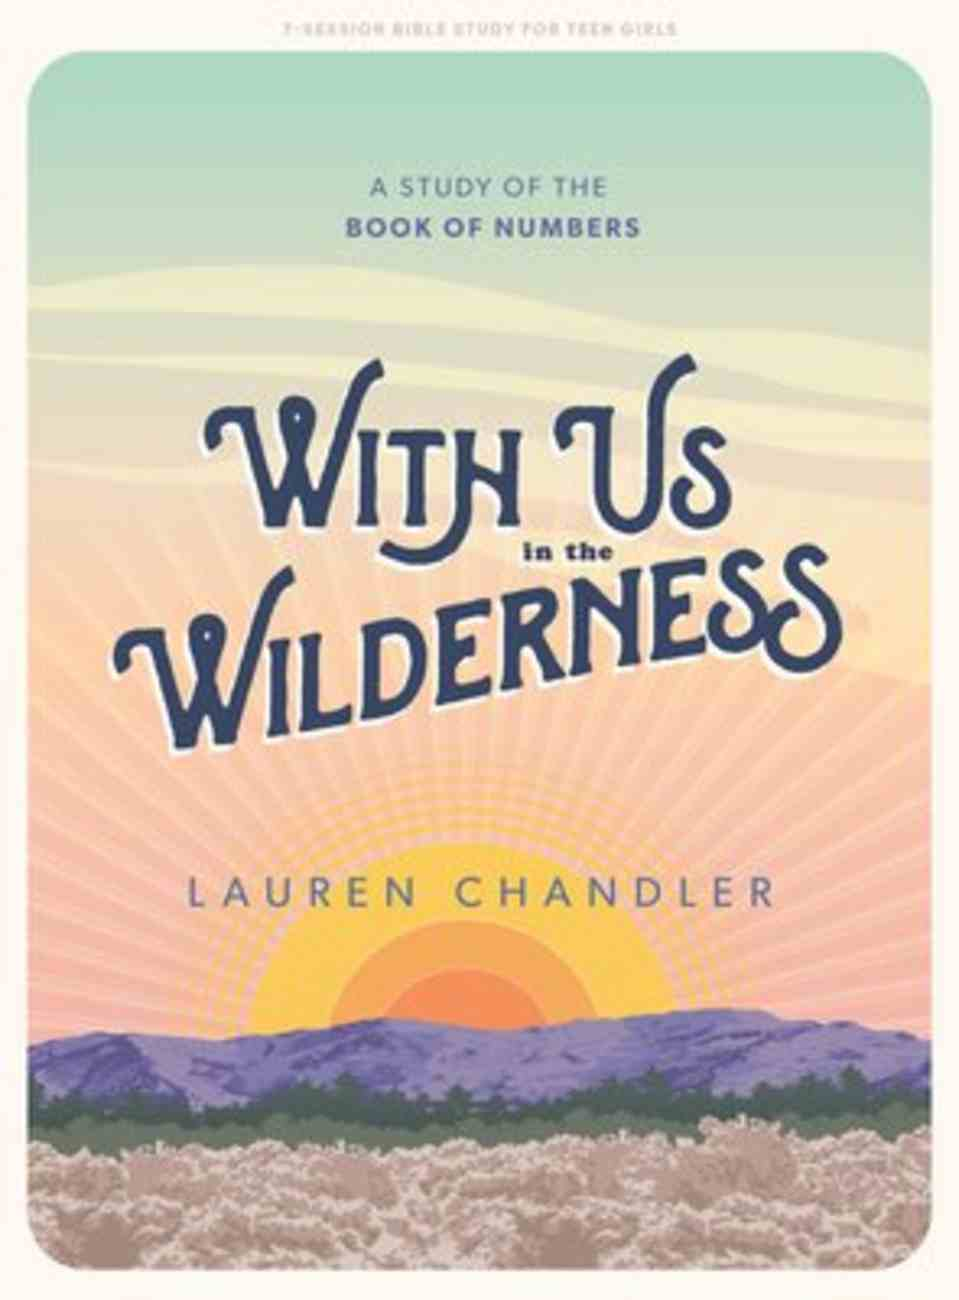 With Us in the Wilderness: A Study of the Book of Numbers (Teen Girls' Bible Study Book) Paperback